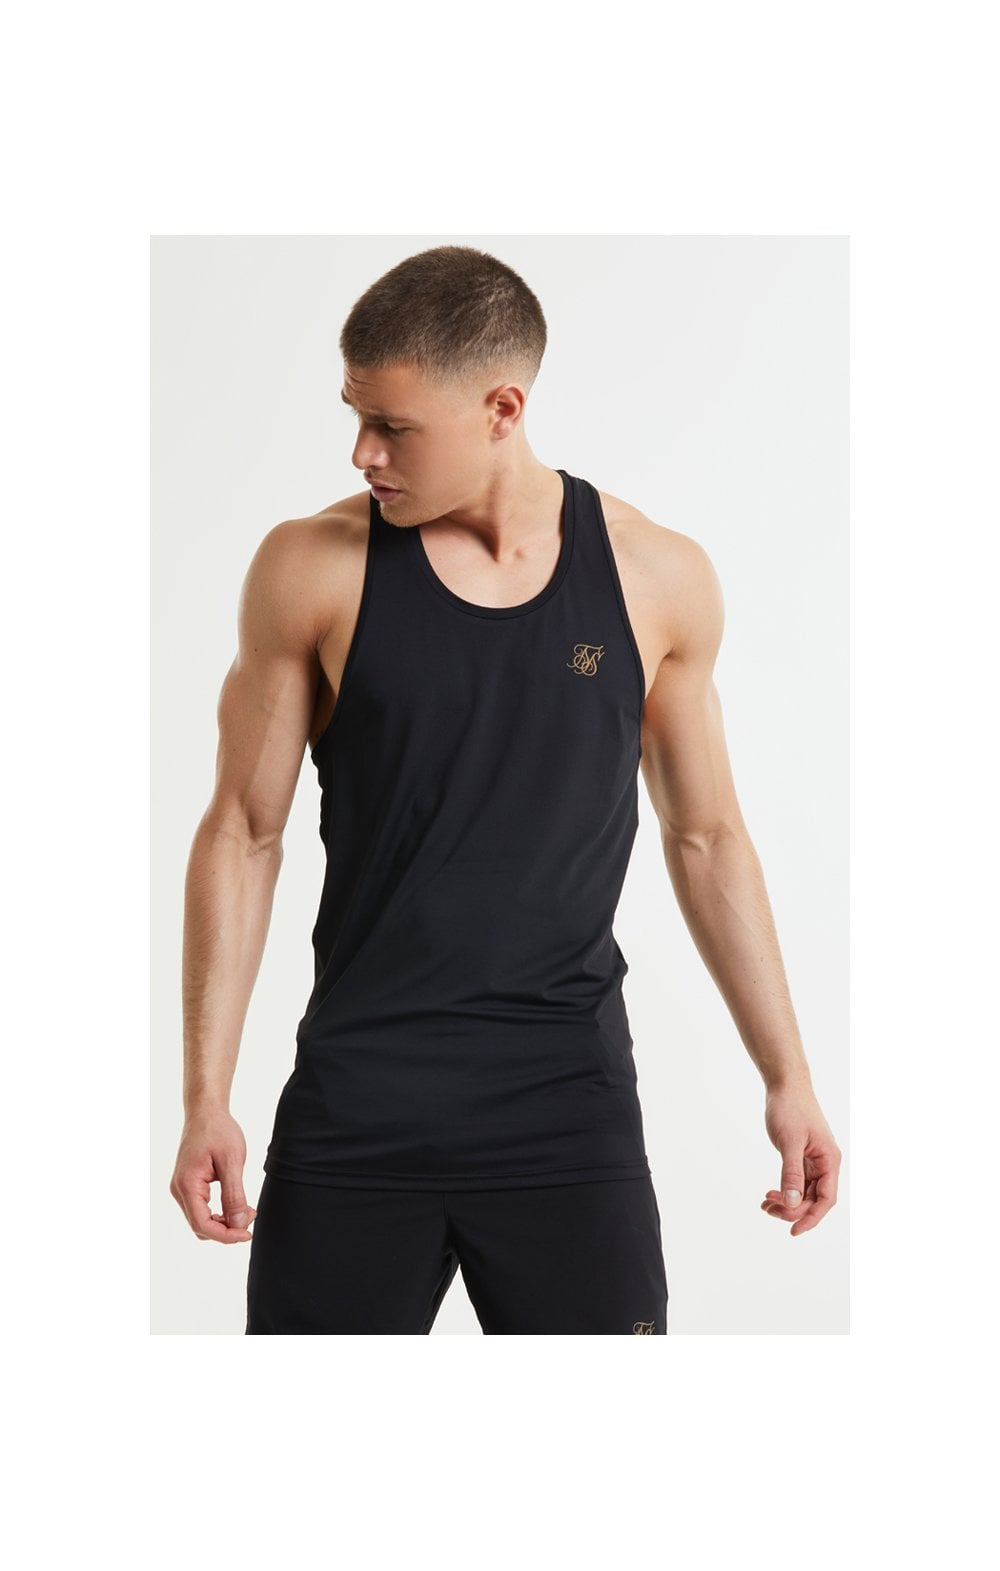 Load image into Gallery viewer, SikSilk Pressure Vest - Black (2)